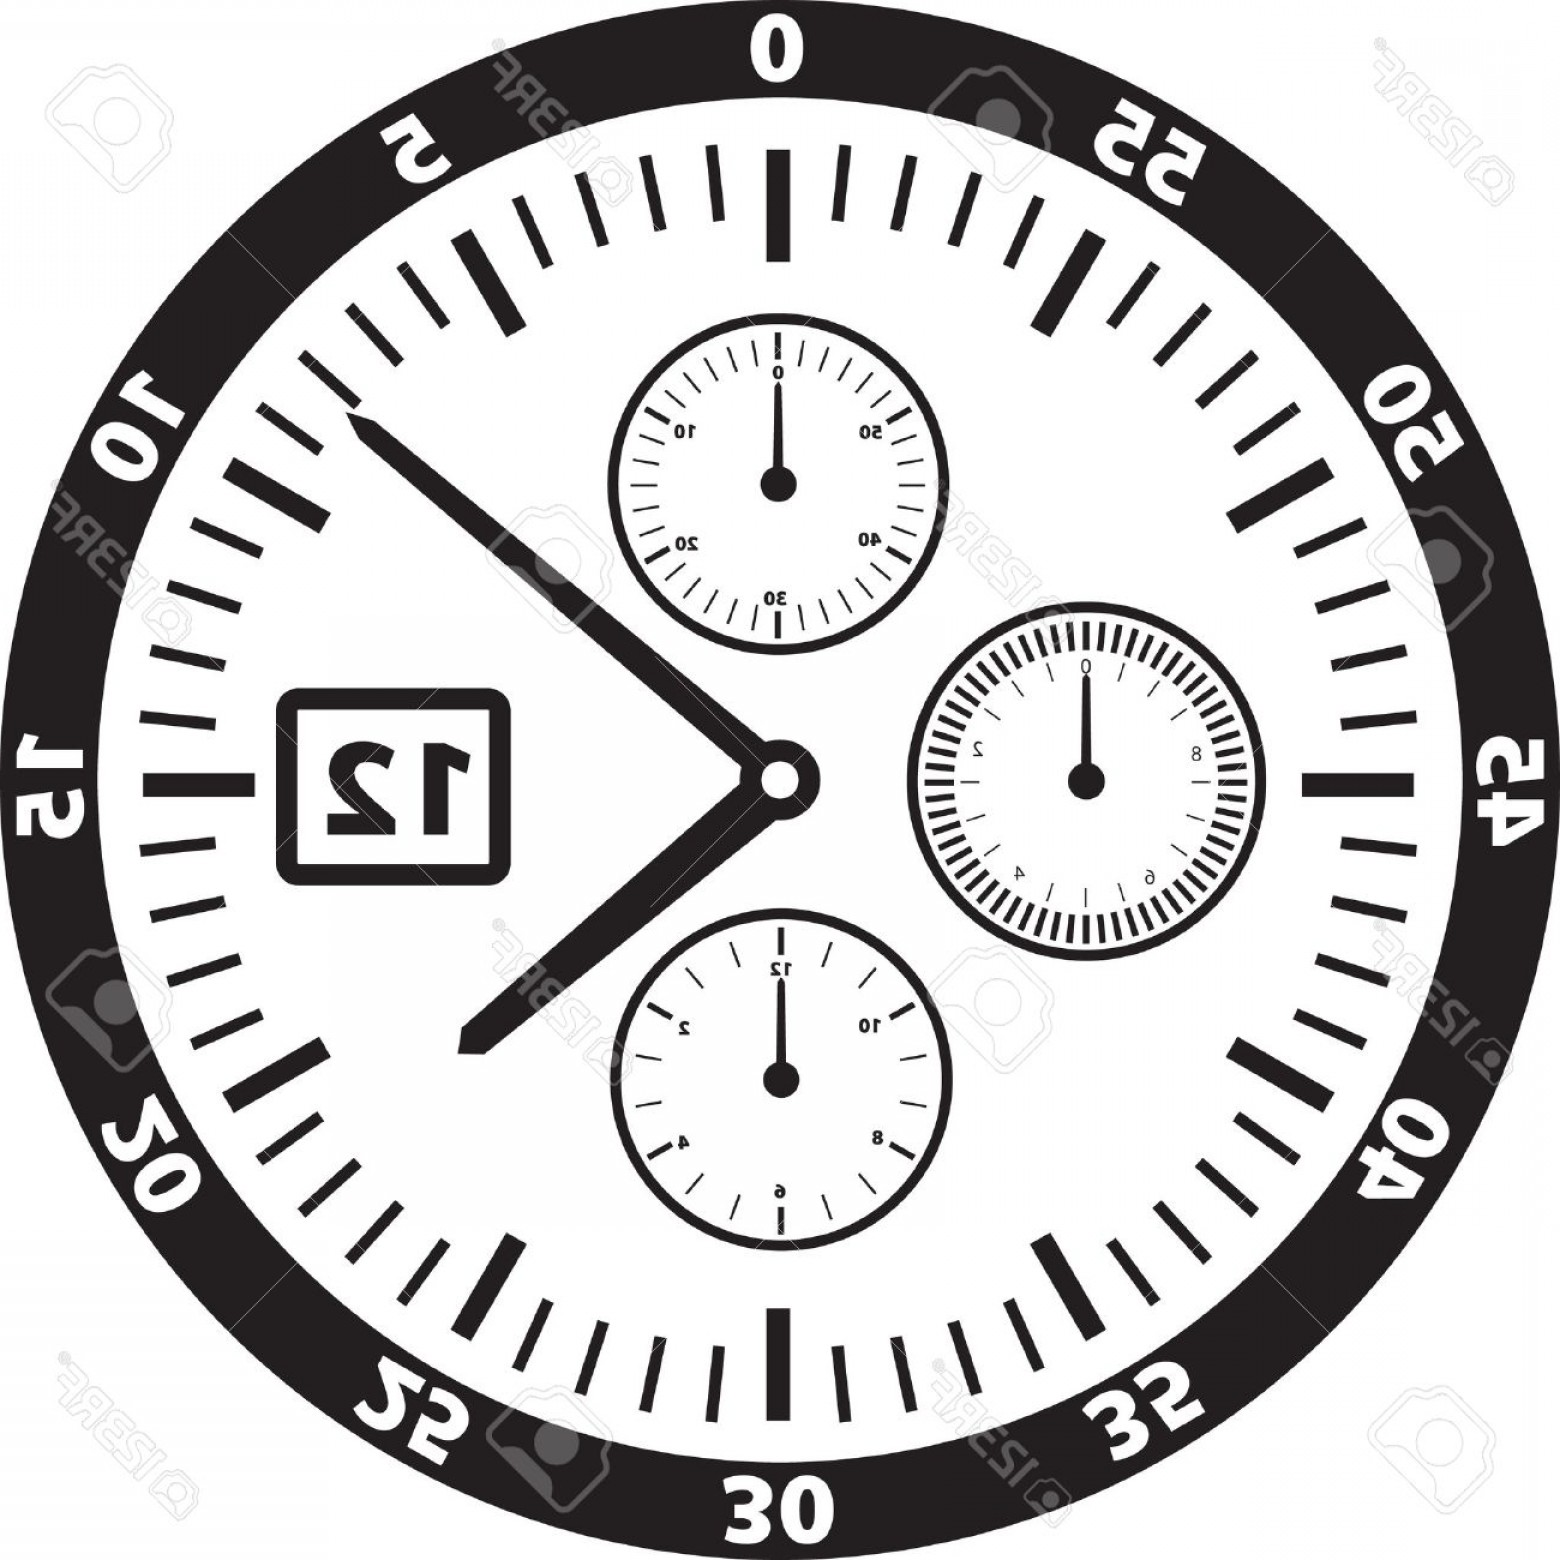 Watch Face Vector: Photovector Illustration Of A Watch Or Clock Face